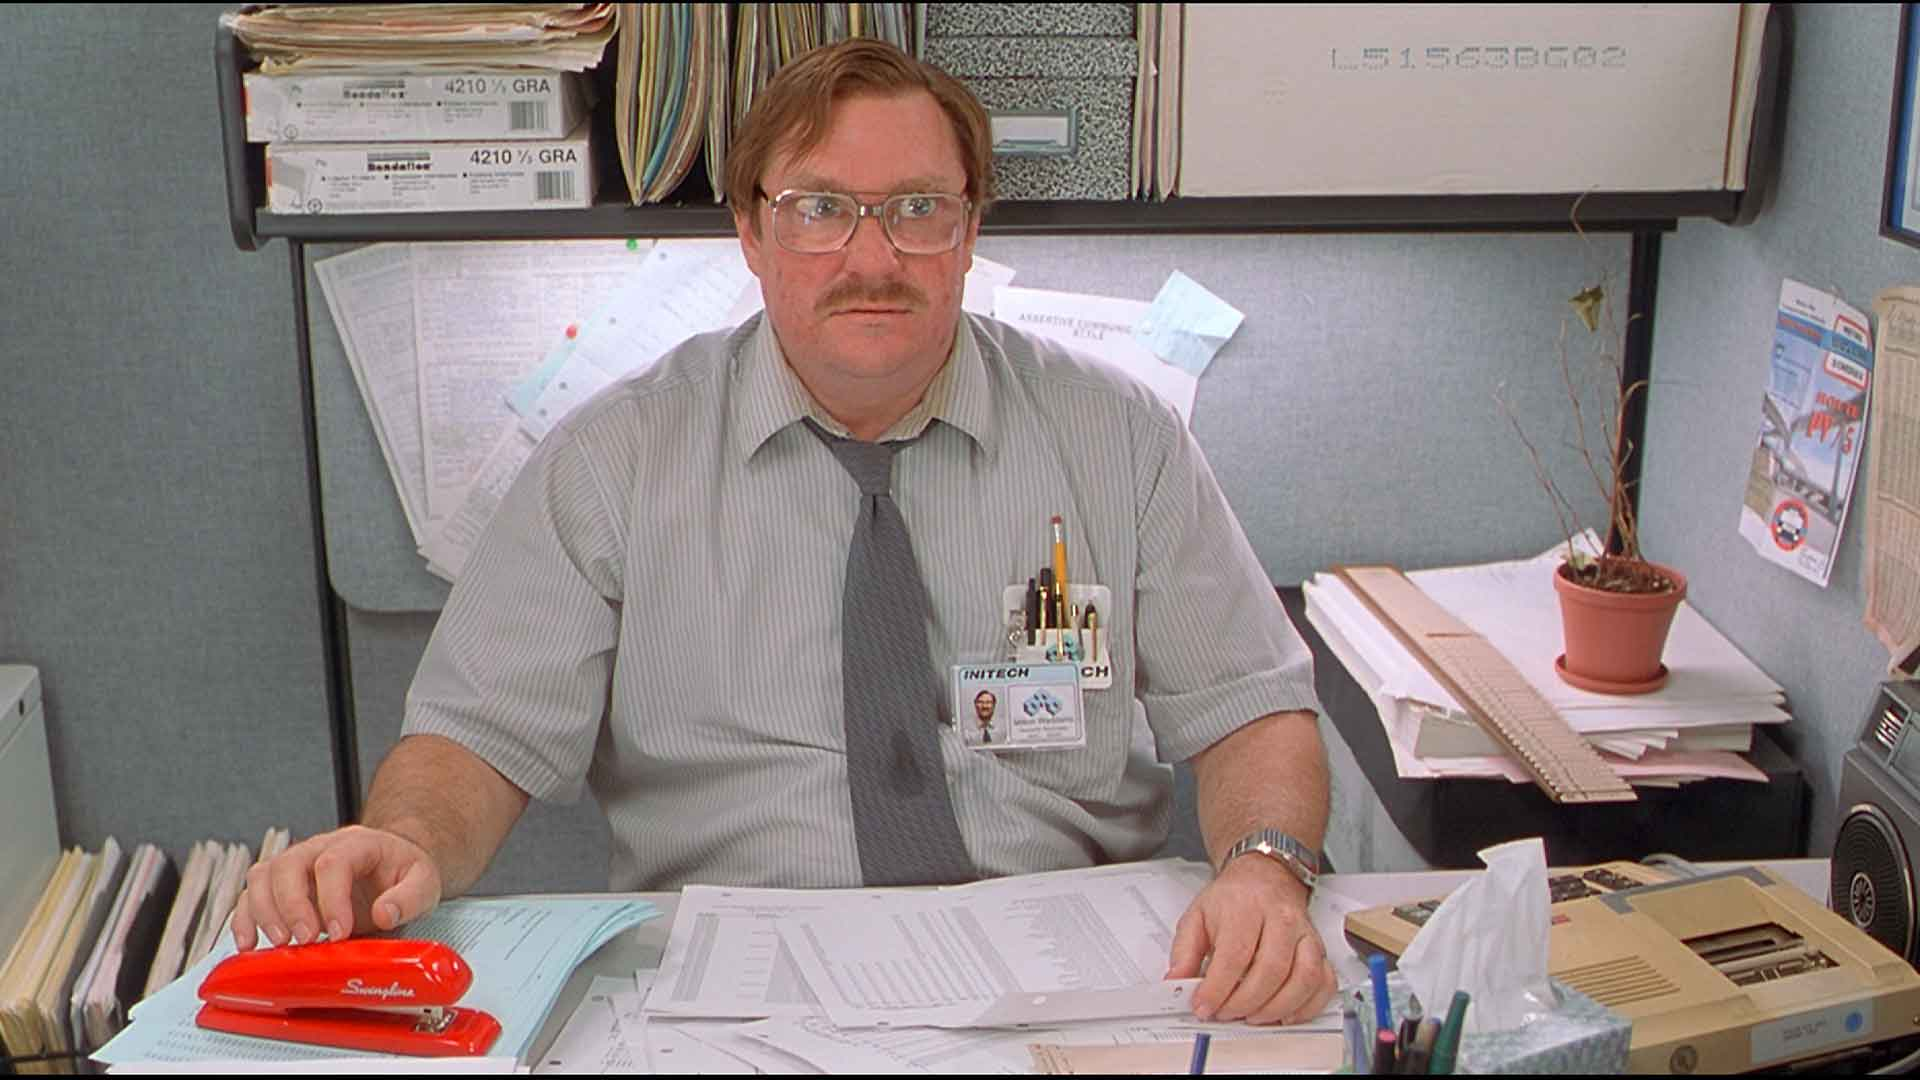 Top 25 Quotes From The Movie Office Space 1999